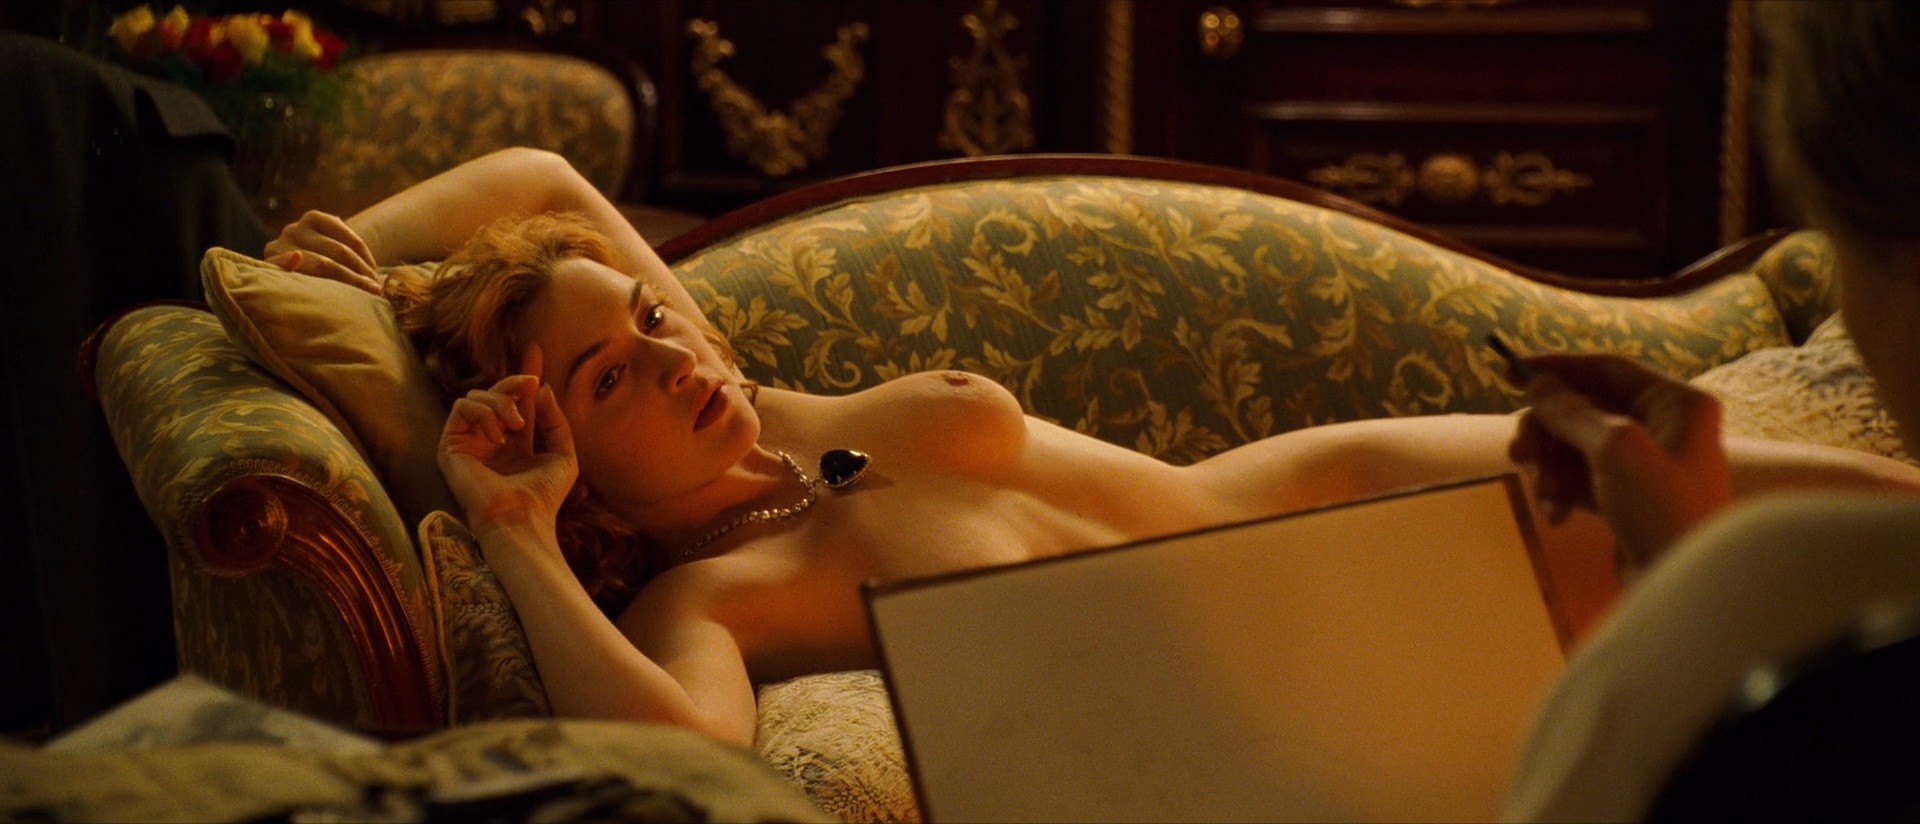 Kate Winslet Nude From Titanic 2